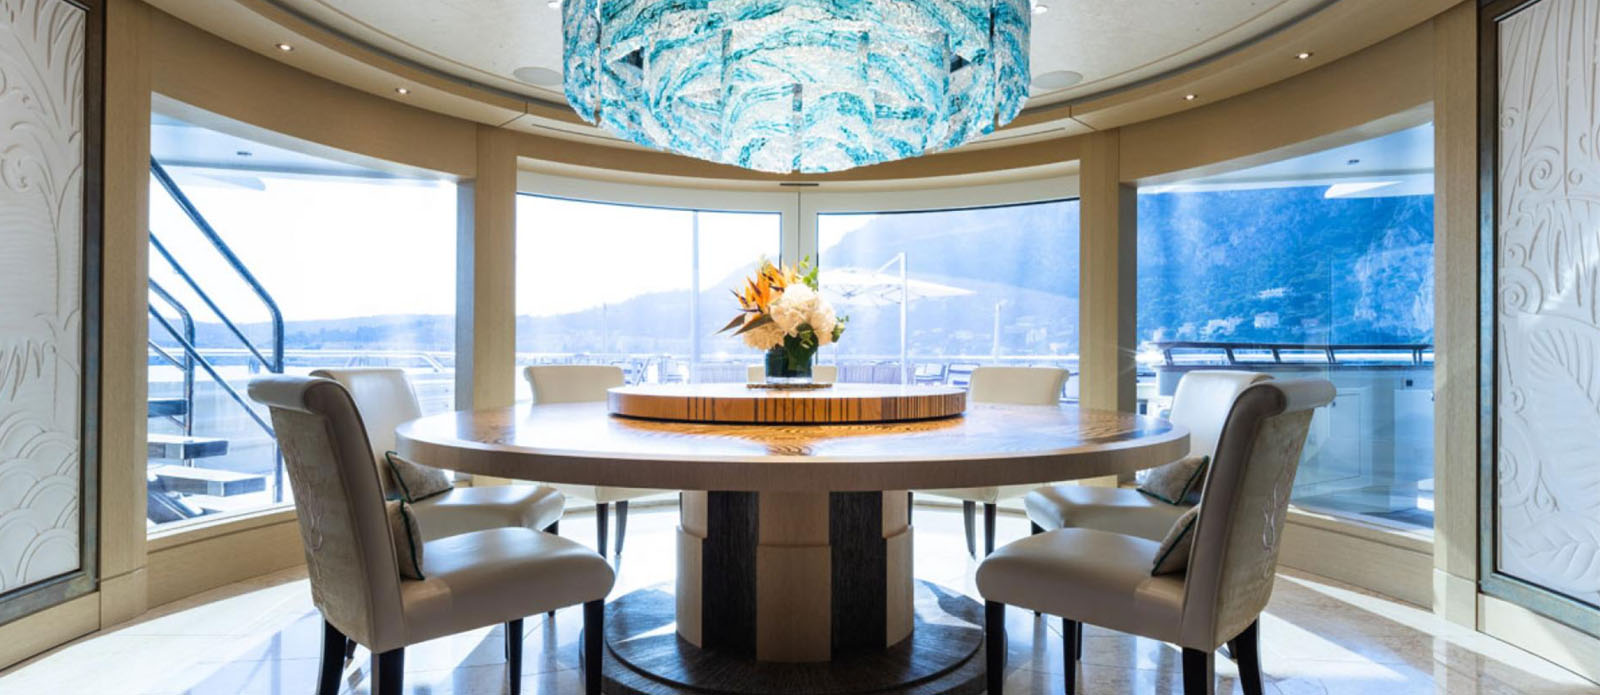 Tranquility - Formal Dining